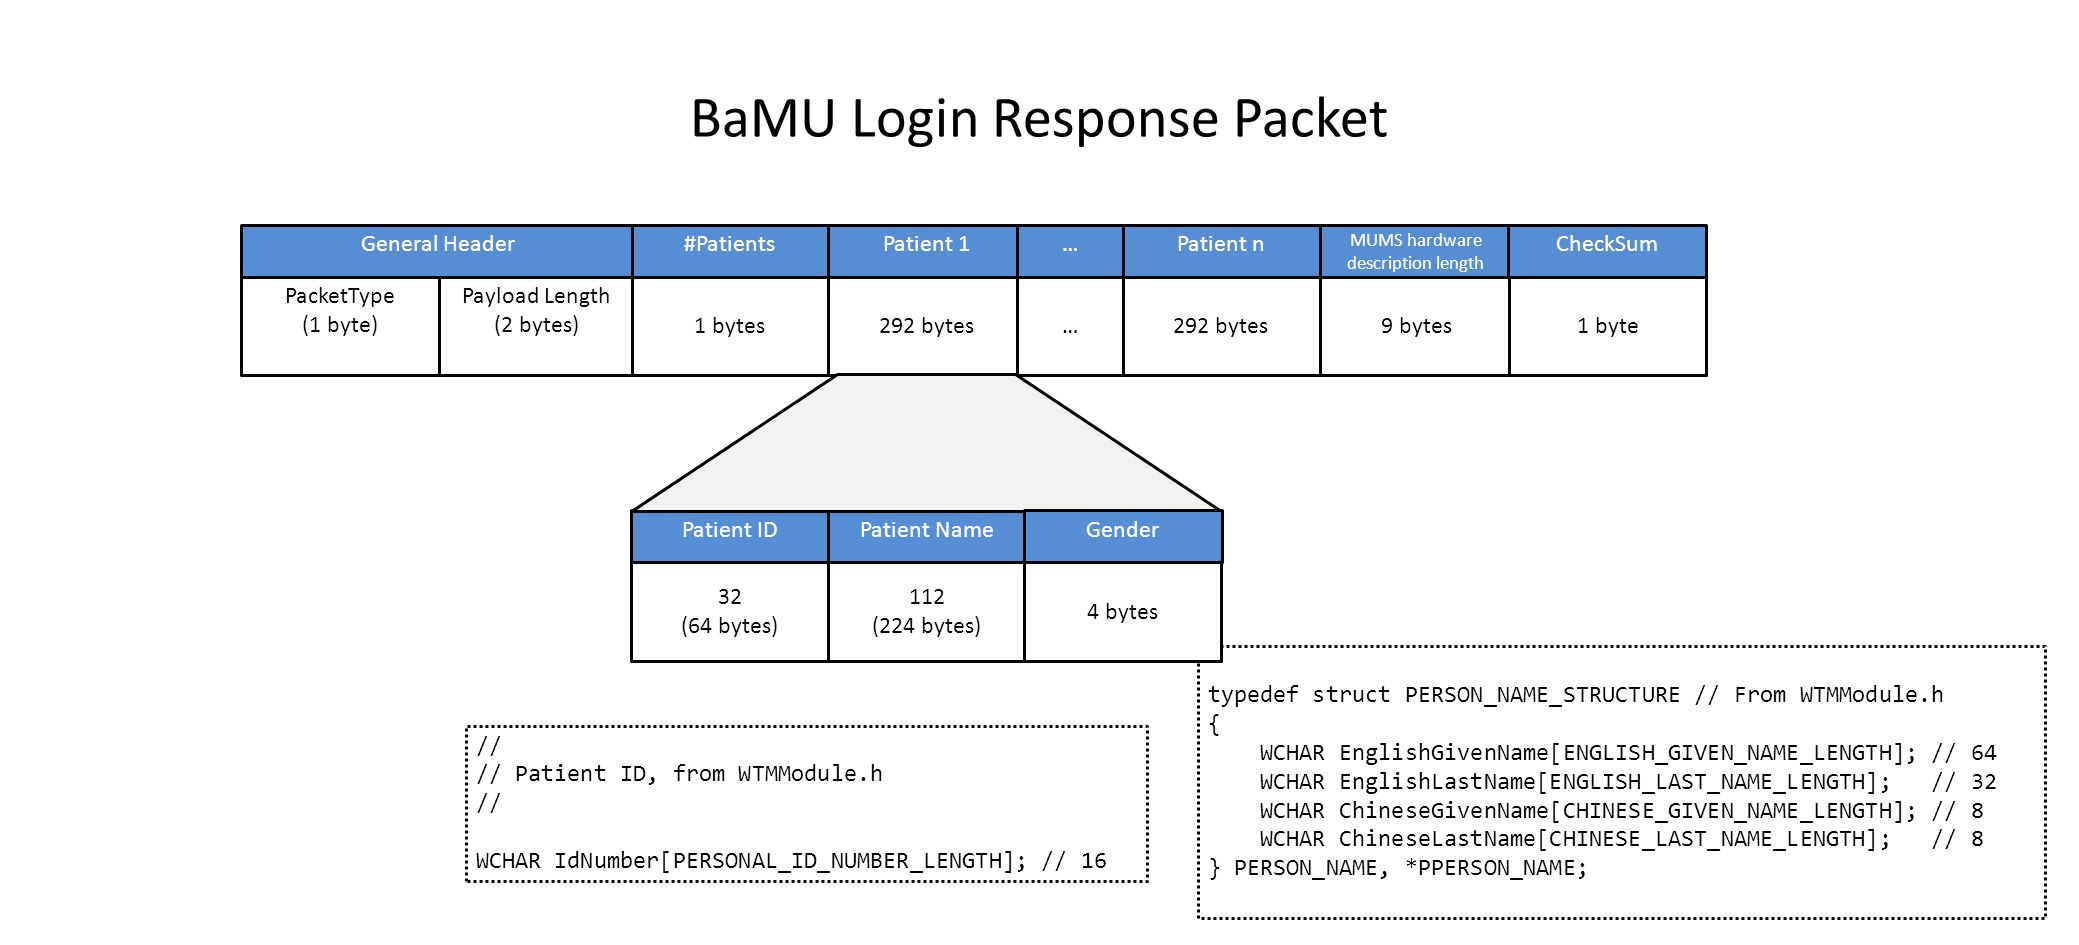 BaMU Login Response Packet PacketType (1 byte) Payload Length (2 bytes) General Header 1 bytes #Patients 9 bytes MUMS hardware description length 292 bytes Patient 1 32 (64 bytes) Patient ID 112 (224 bytes) Patient Name 292 bytes Patient n … … typedef struct PERSON_NAME_STRUCTURE // From WTMModule.h { WCHAR EnglishGivenName[ENGLISH_GIVEN_NAME_LENGTH]; // 64 WCHAR EnglishLastName[ENGLISH_LAST_NAME_LENGTH]; // 32 WCHAR ChineseGivenName[CHINESE_GIVEN_NAME_LENGTH]; // 8 WCHAR ChineseLastName[CHINESE_LAST_NAME_LENGTH]; // 8 } PERSON_NAME, *PPERSON_NAME; // // Patient ID, from WTMModule.h // WCHAR IdNumber[PERSONAL_ID_NUMBER_LENGTH]; // 16 1 byte CheckSum 4 bytes Gender